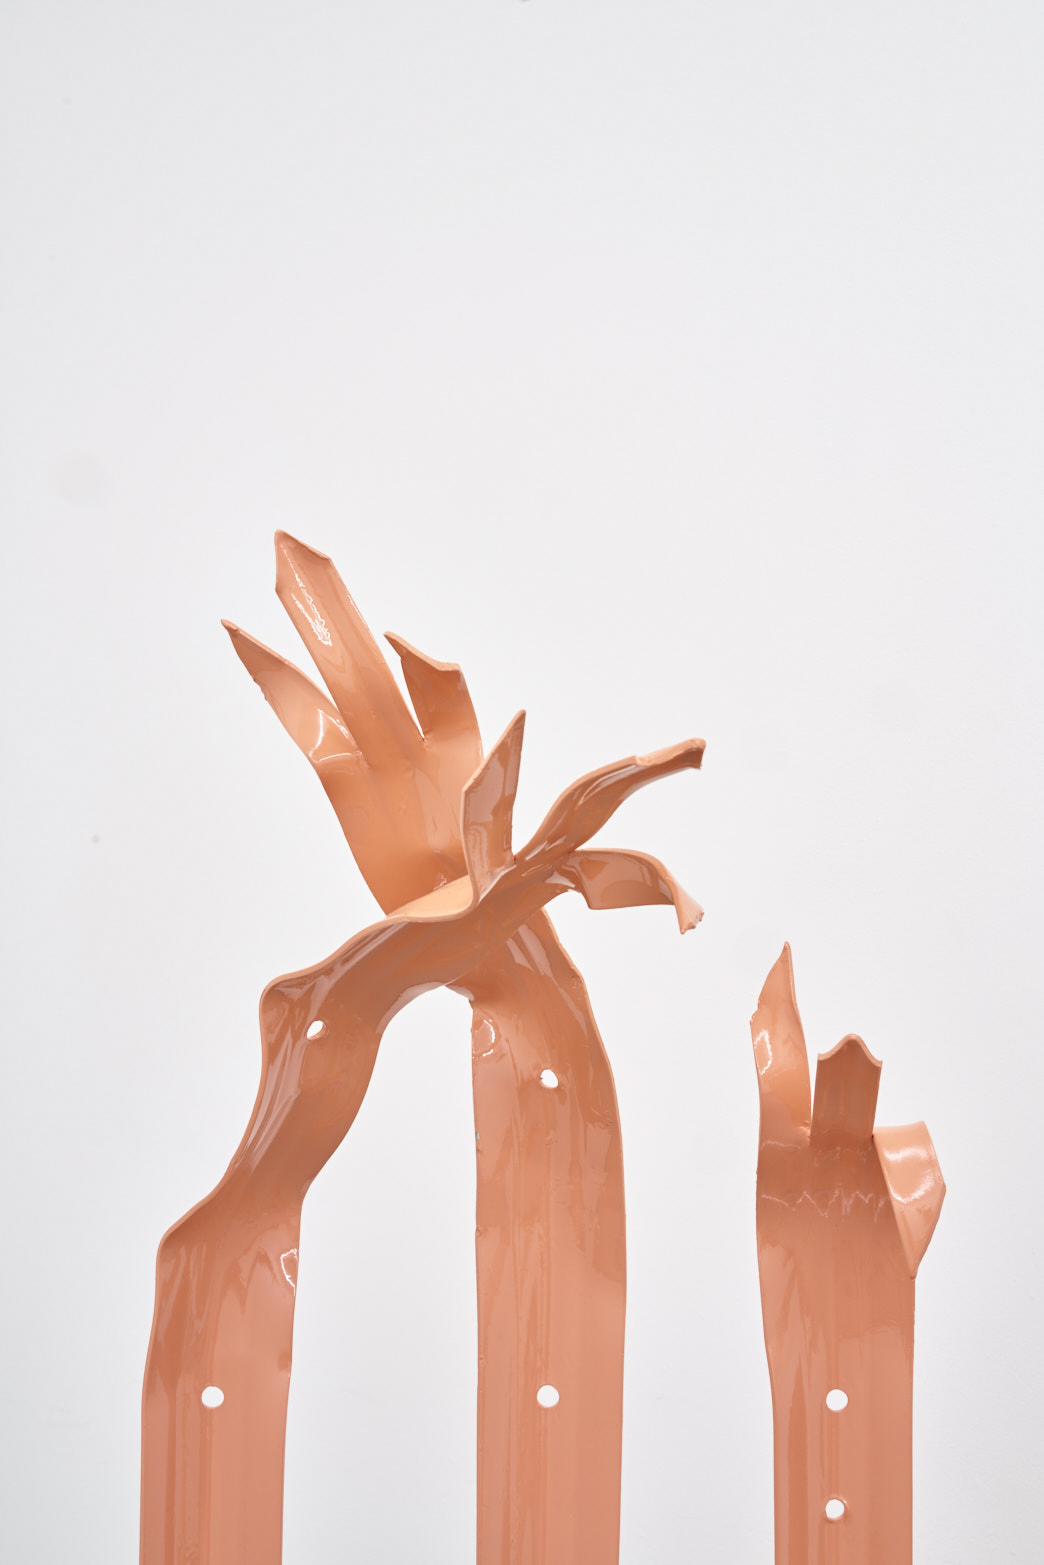 Paloma Proudfoot, Gauntlet, 2018. Anti-vandal fencing, perspex, hand-sewn plastic gloves, glazed stoneware, shower gel